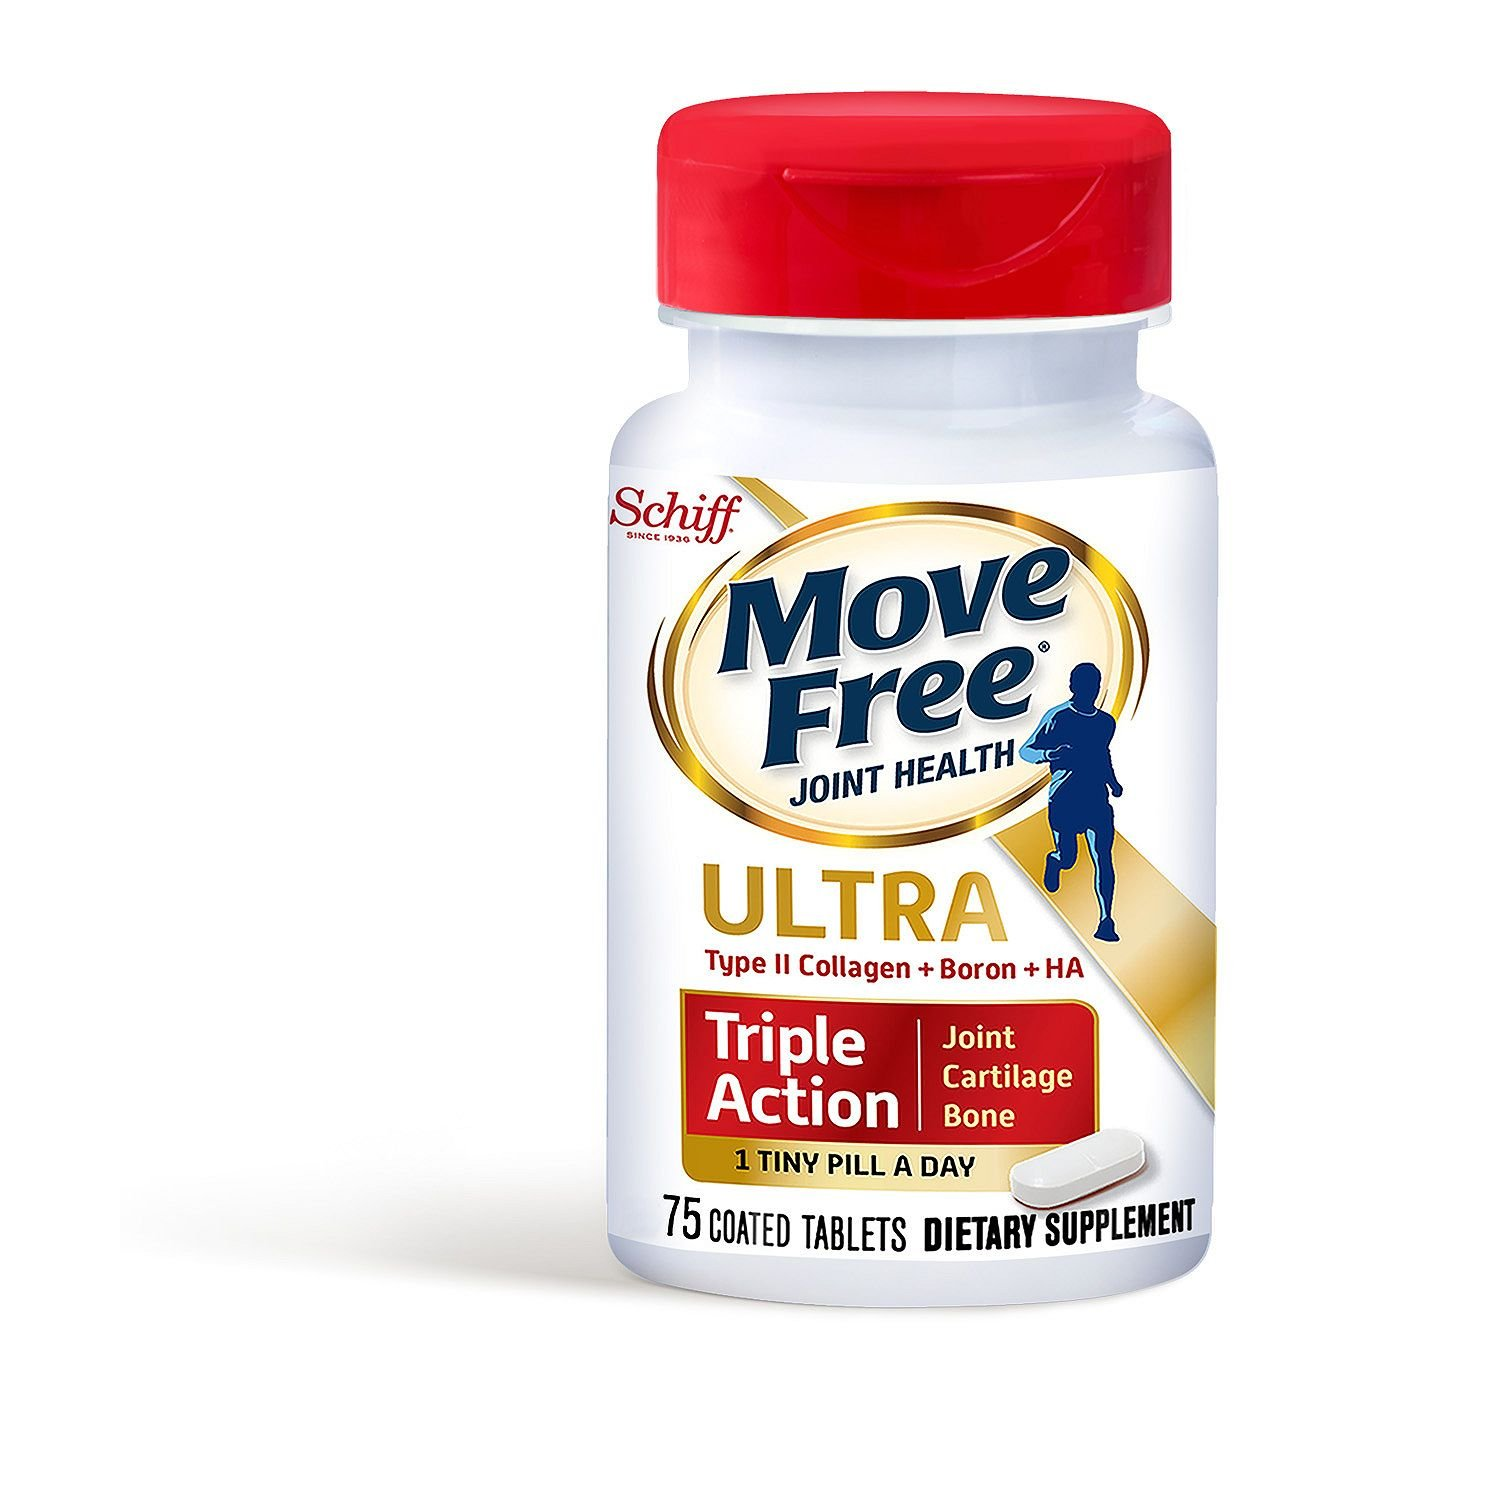 Schiff Move Free Ultra Triple-Action Tablets (75 count) by Schiff